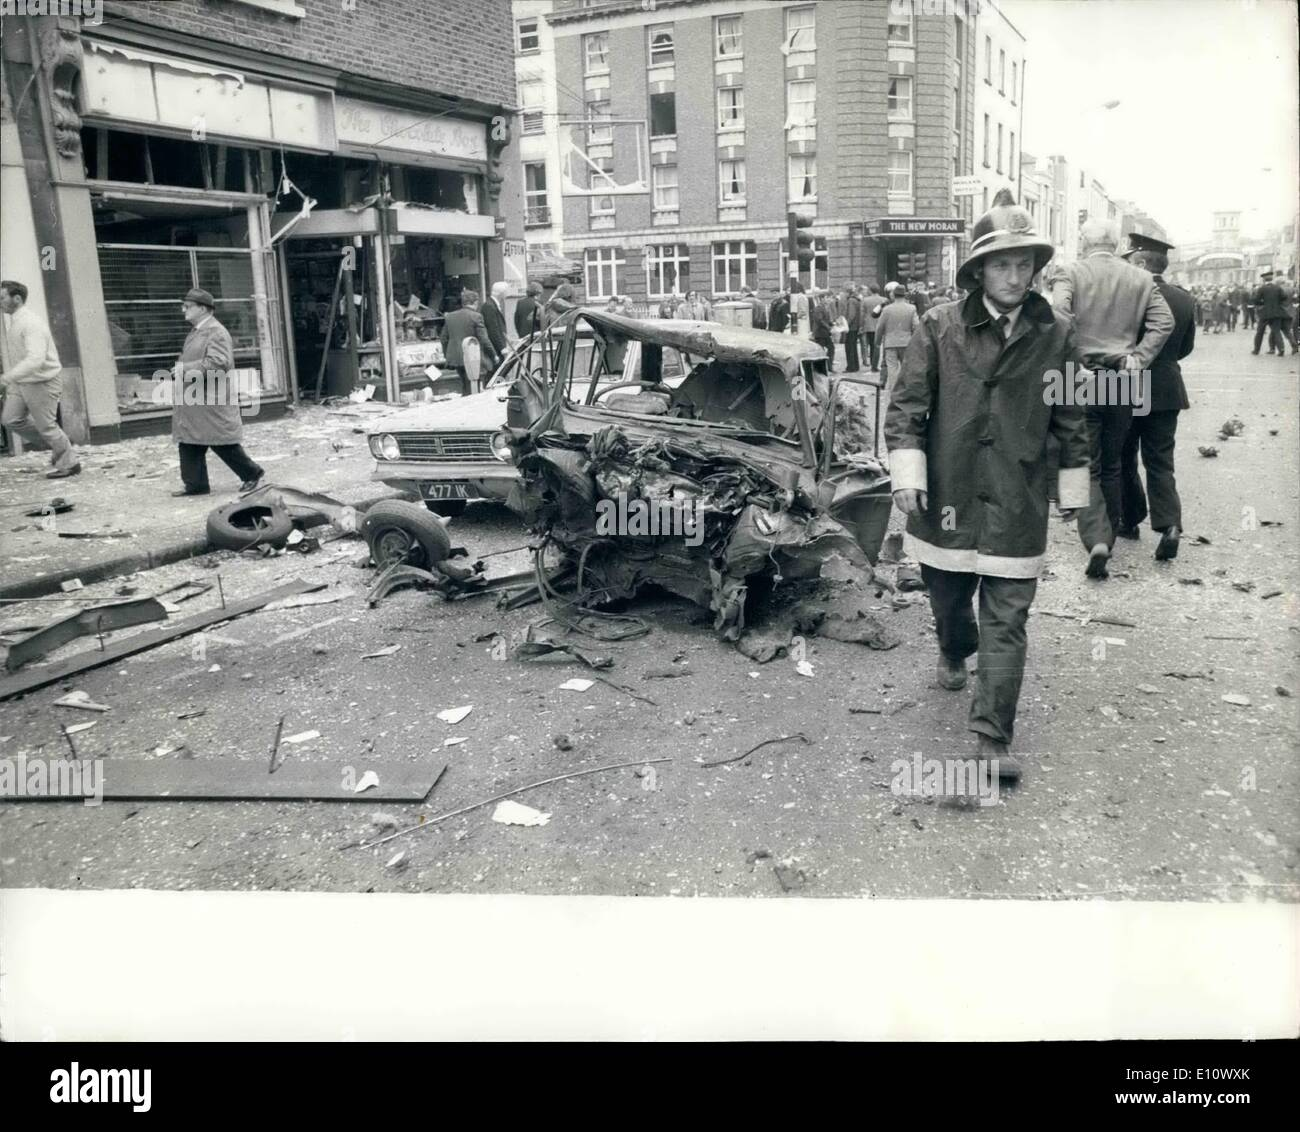 May 05, 1974 - 28 killed and 150 injured by car bomb blasts in Dublin last night: Atleast 22 people, of which two were babies, were killed and 150 injured in the centre of Dublin last night as three car bombs went off almost simultaneously during the rush hour. In the other bomb explosion in the border town of Menaghan, four more were killed. Photo shows a wrecked car which was near the explosion in Talbet Street Dublin yesterday. - Stock Image